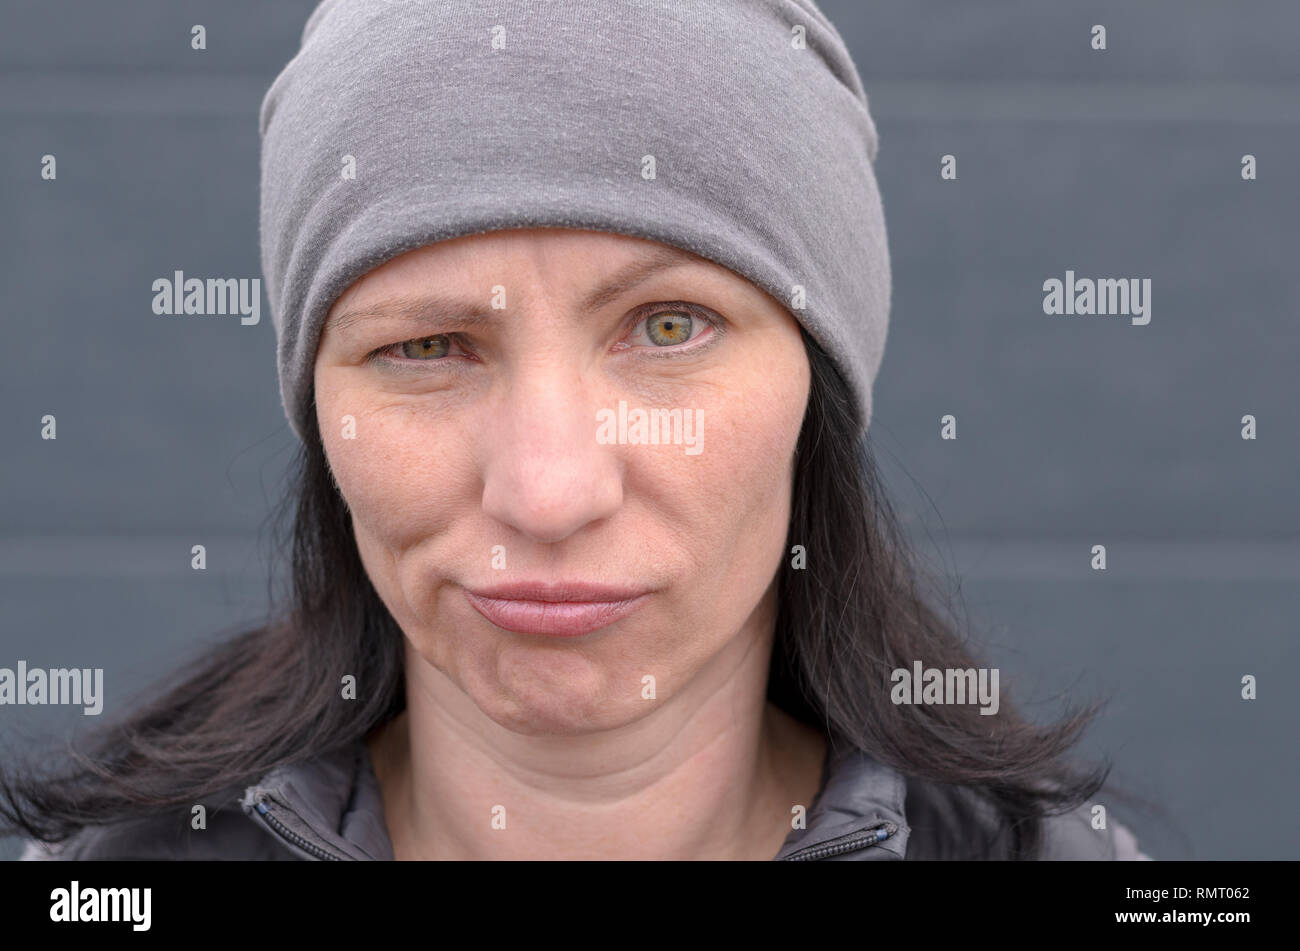 Dubious woman wearing a knitted grey winter cap grimacing and looking at camera with a pensive expression in a close up cropped portrait - Stock Image